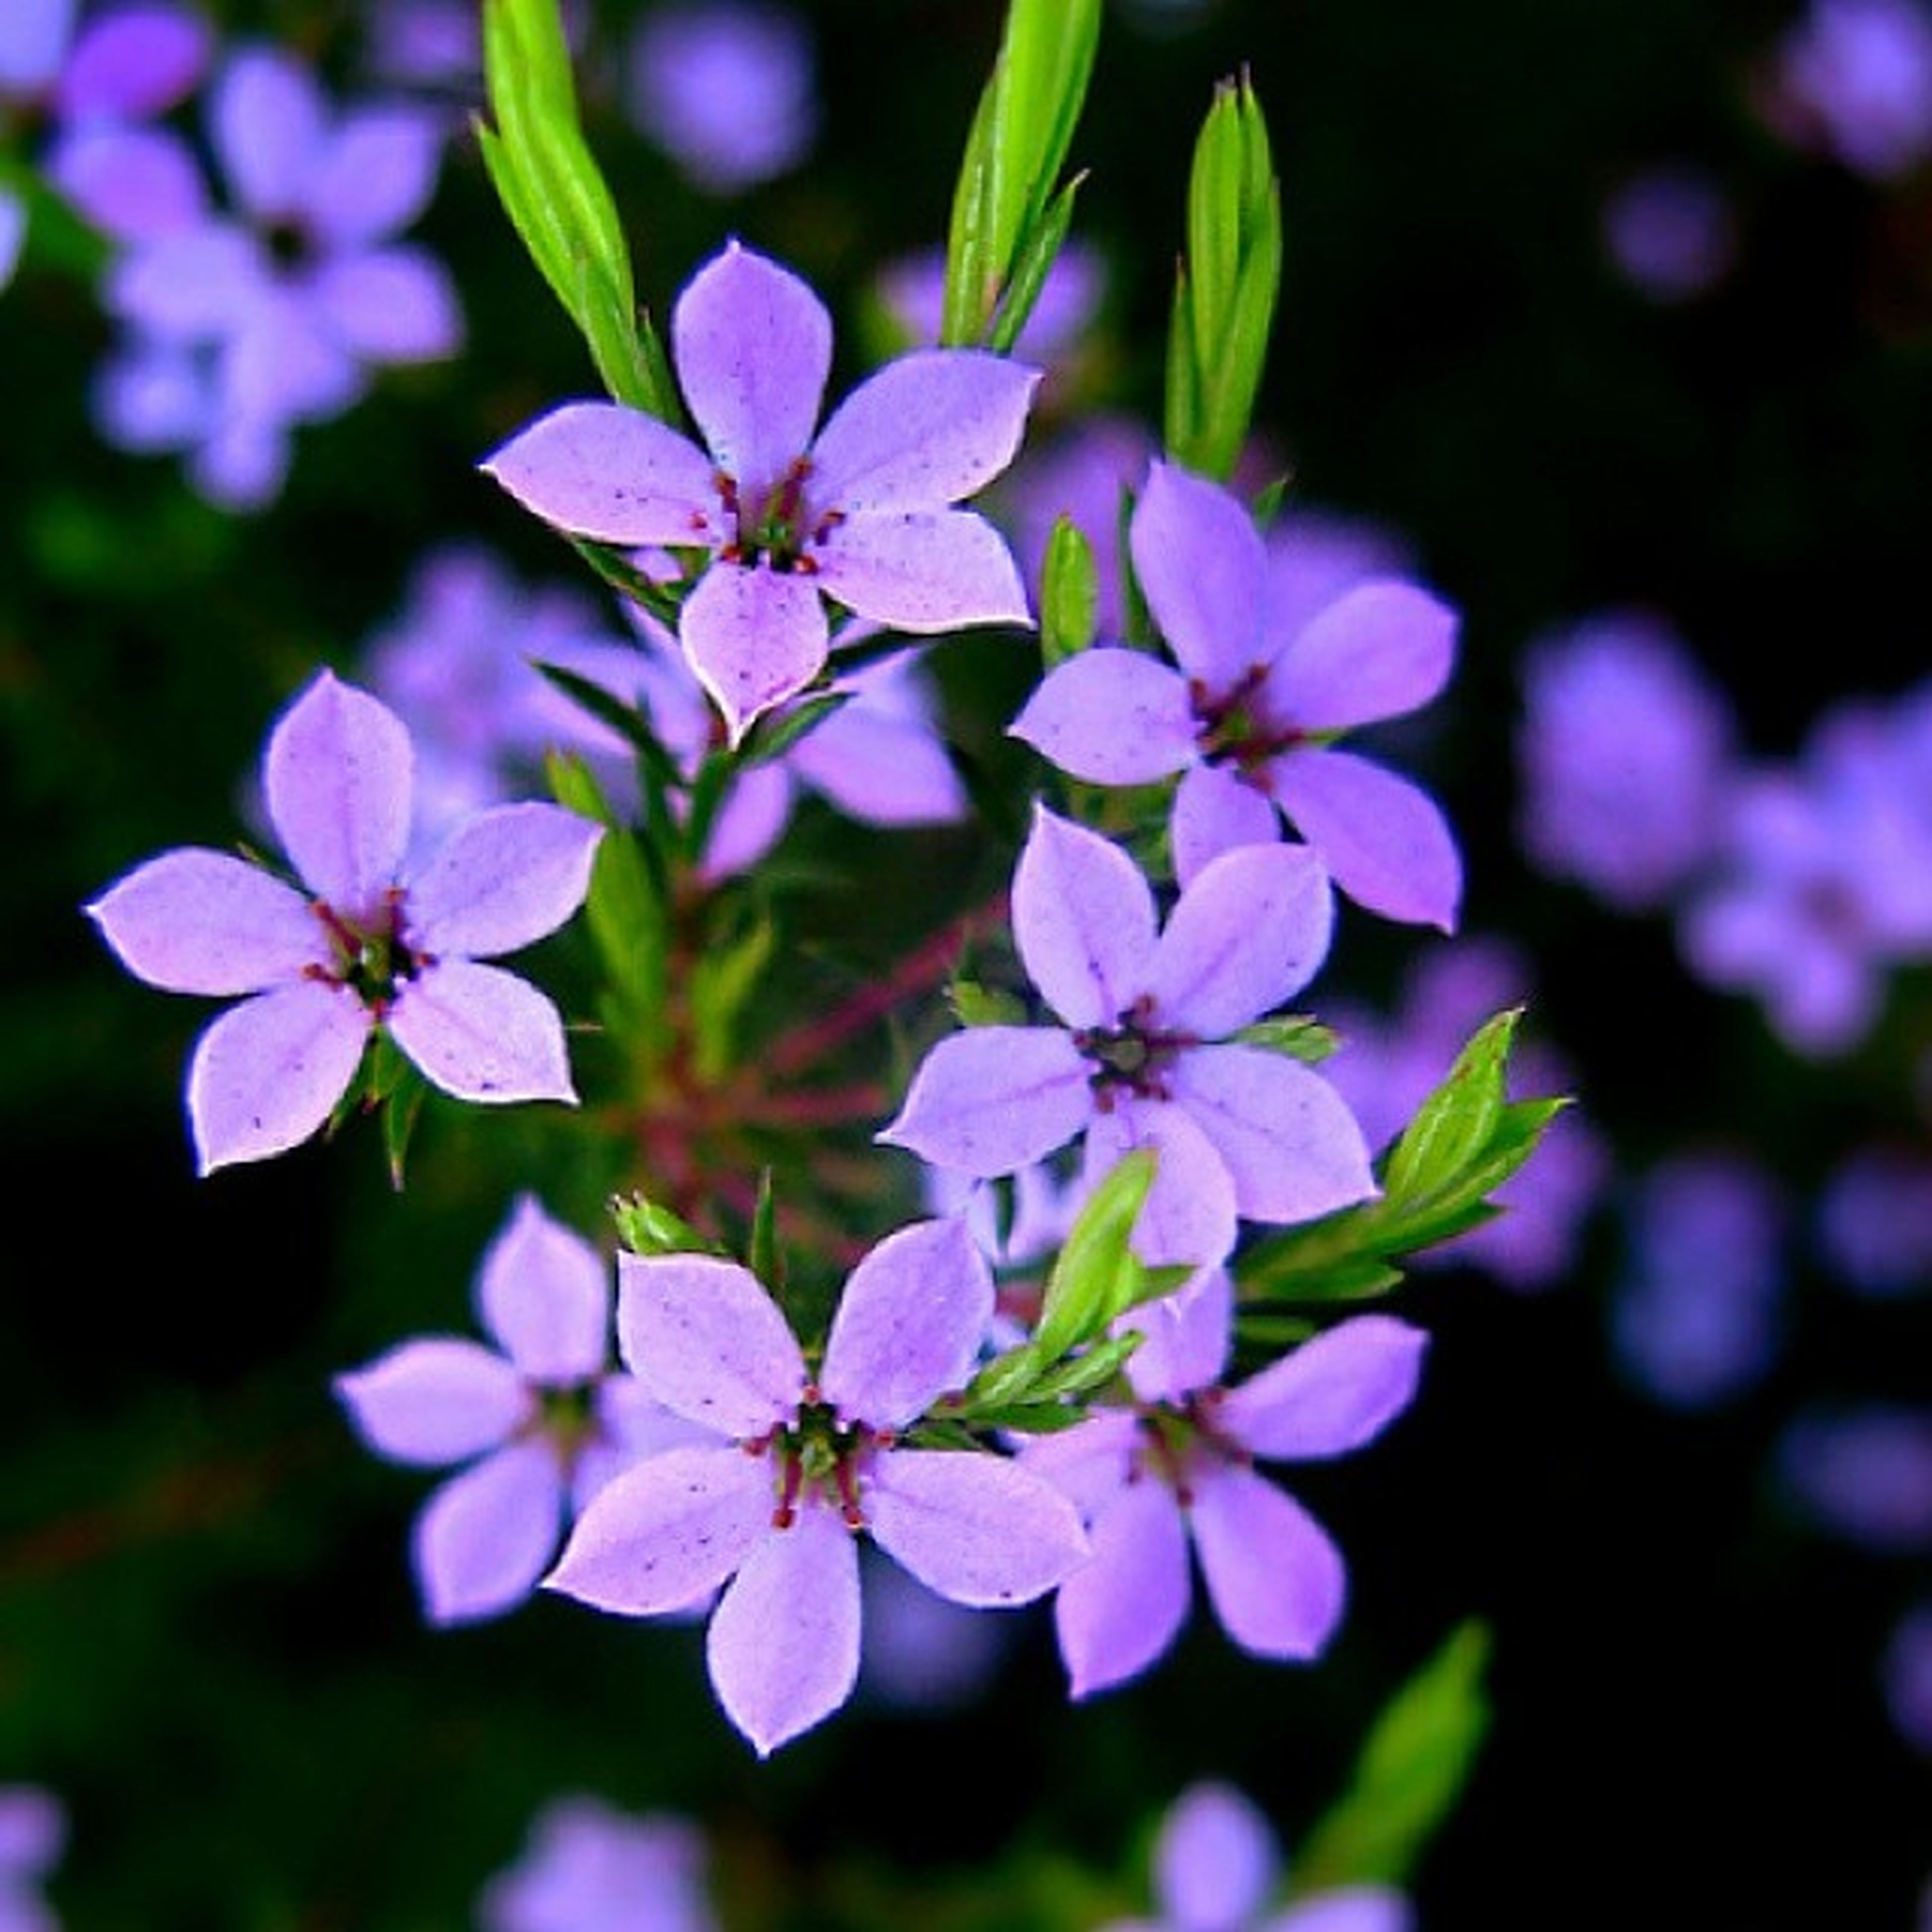 flower, freshness, growth, purple, fragility, petal, beauty in nature, close-up, nature, focus on foreground, flower head, blooming, plant, in bloom, blossom, day, selective focus, outdoors, no people, park - man made space